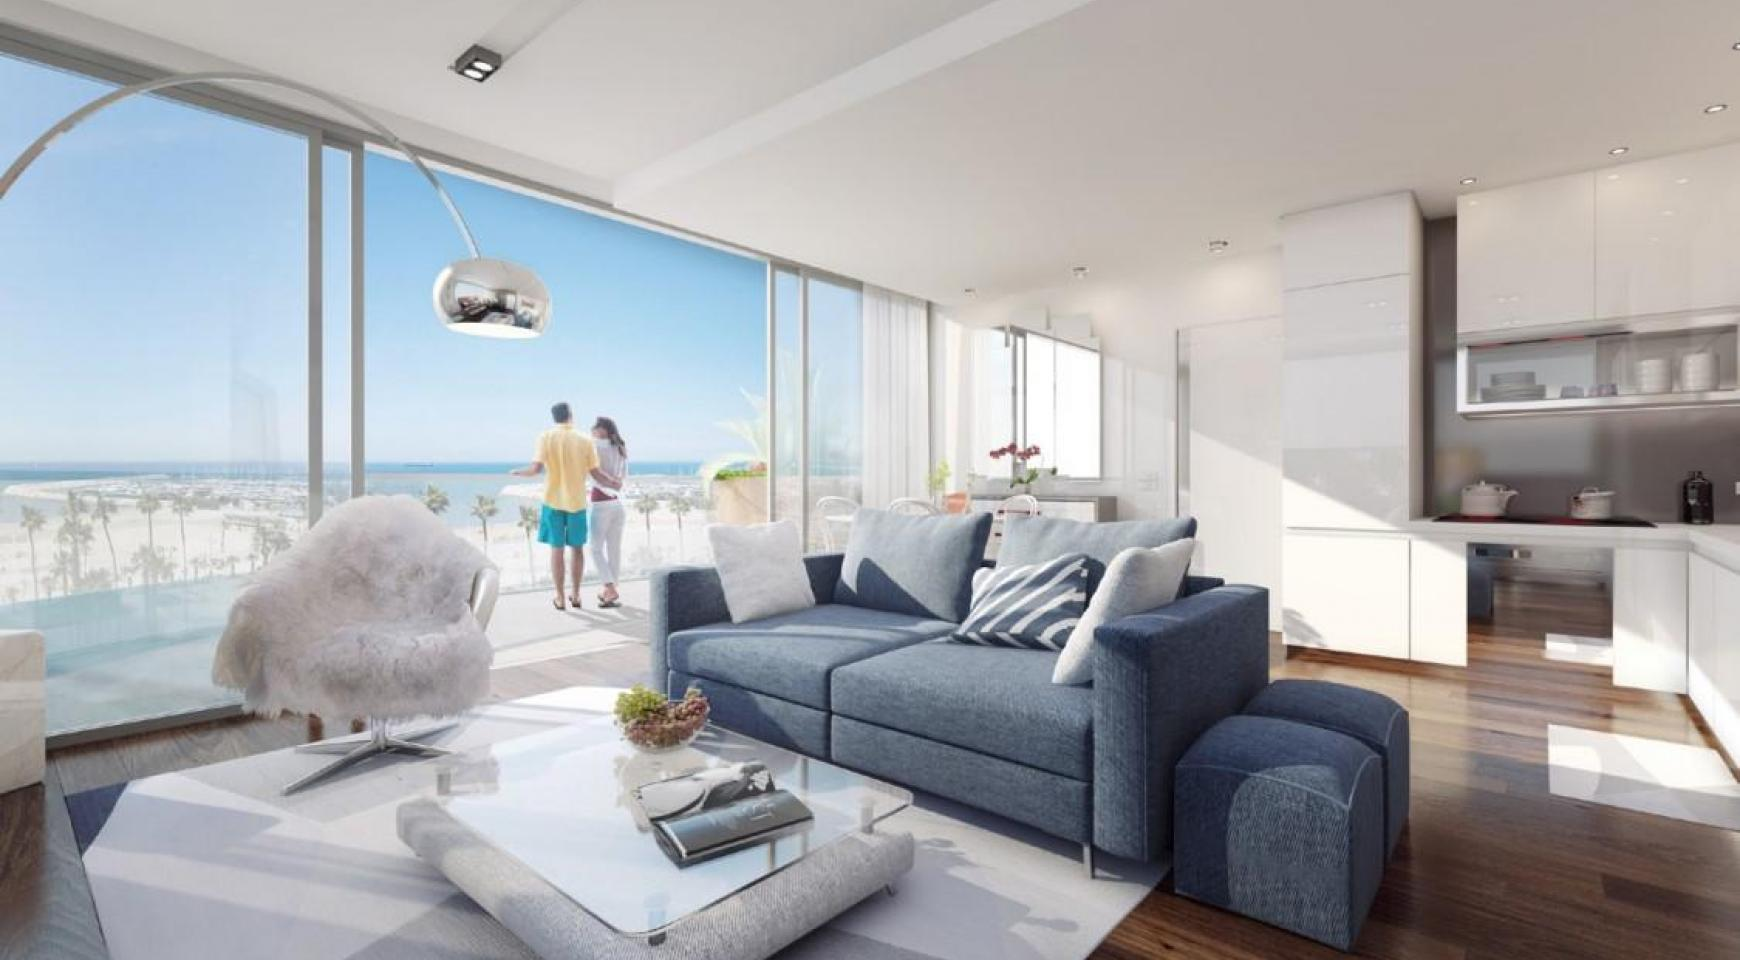 New One Bedroom Apartment near the Sea - 7